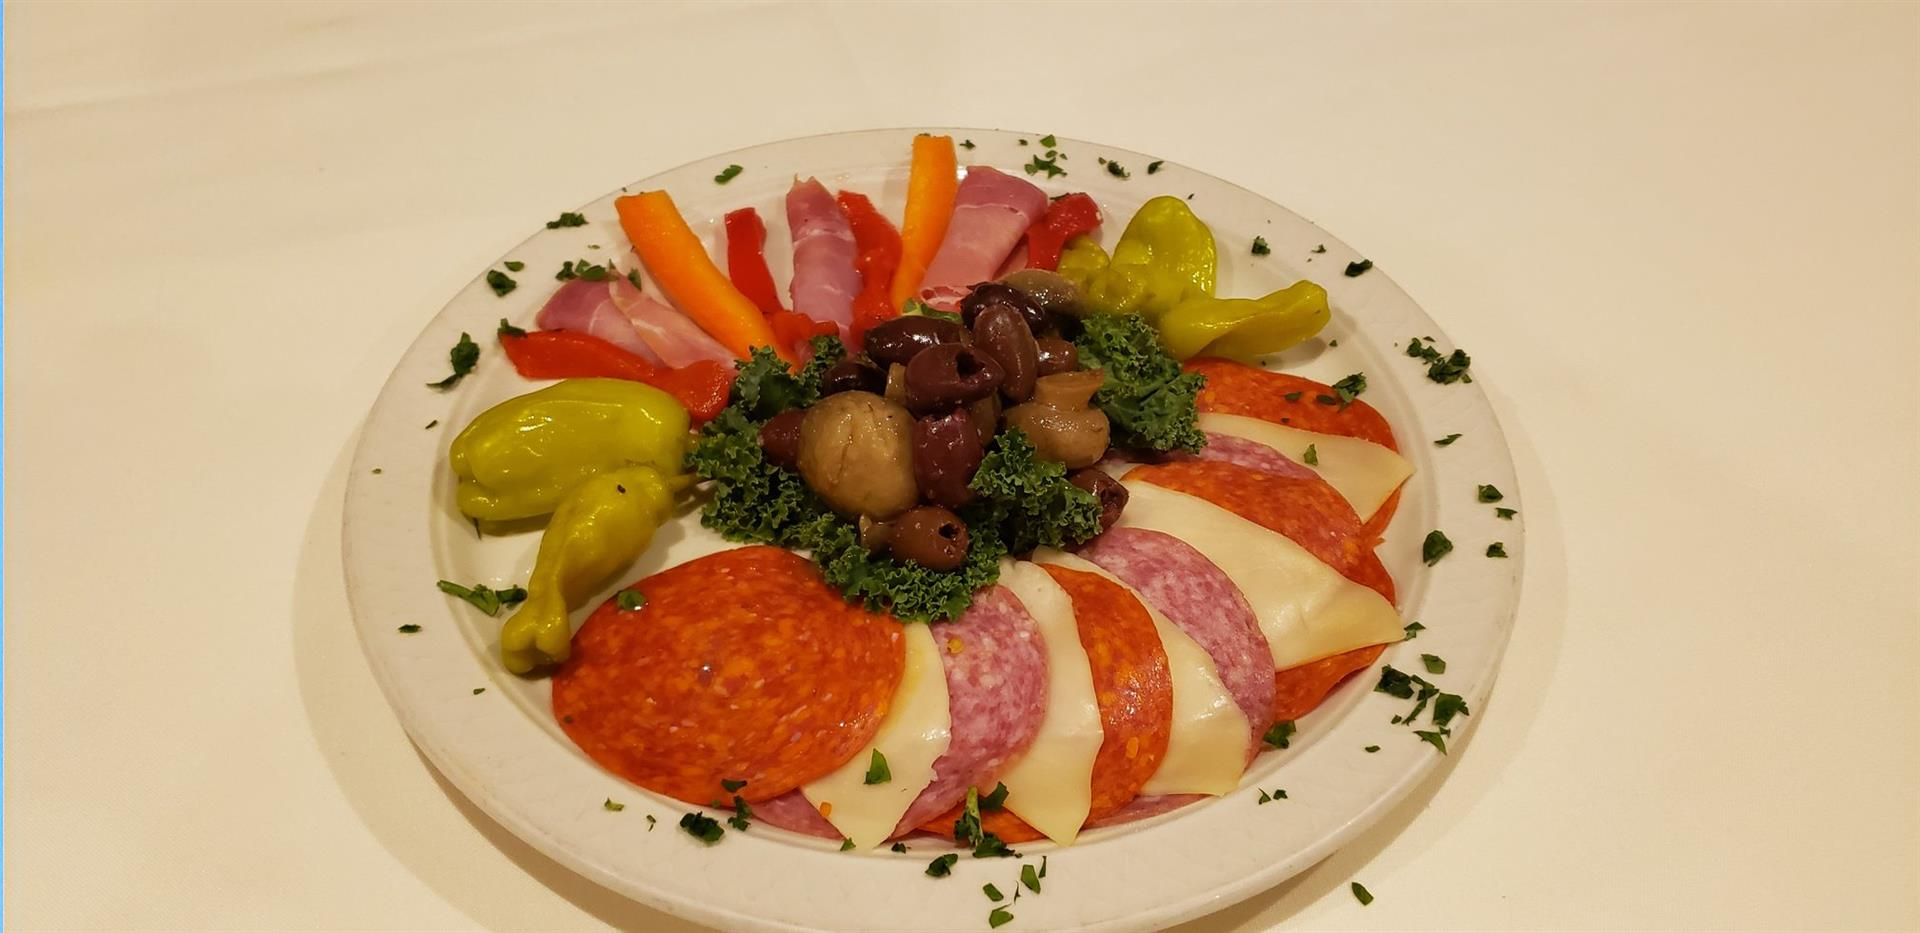 Cold antipasti with assorted sliced meats, cheeses, olives and peppers